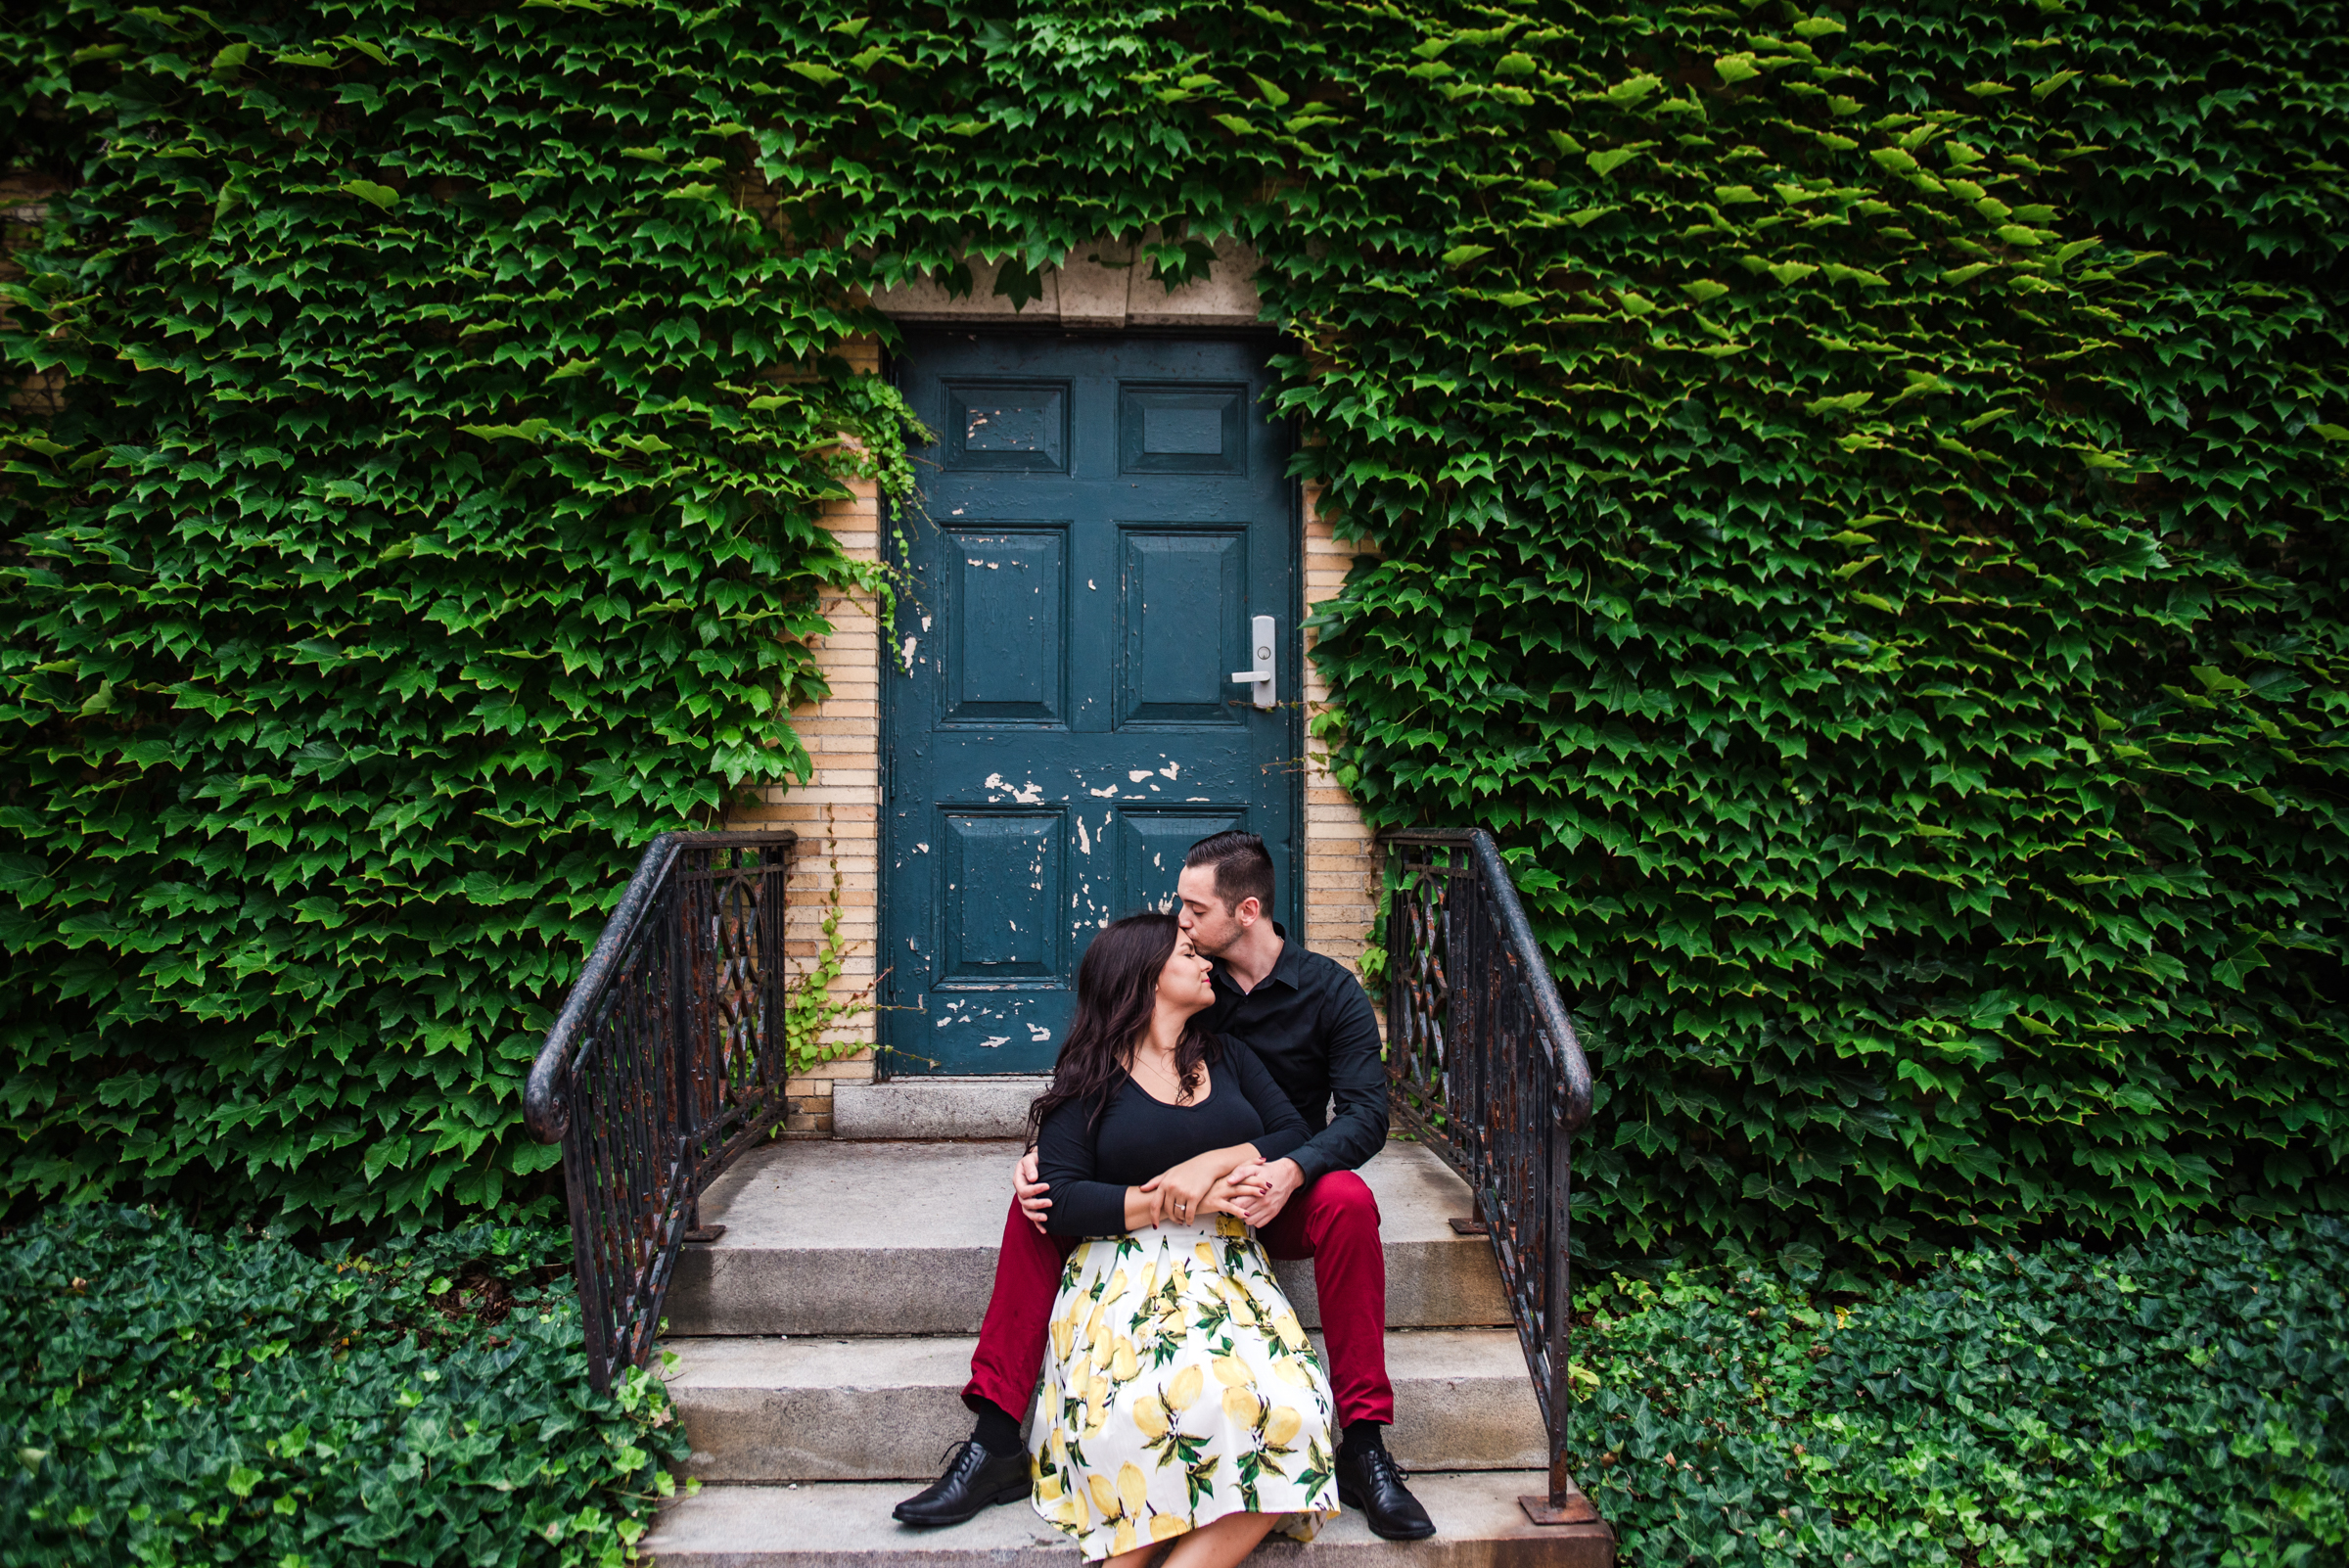 George_Eastman_House_Rochester_Engagement_Session_JILL_STUDIO_Rochester_NY_Photographer_DSC_6509.jpg